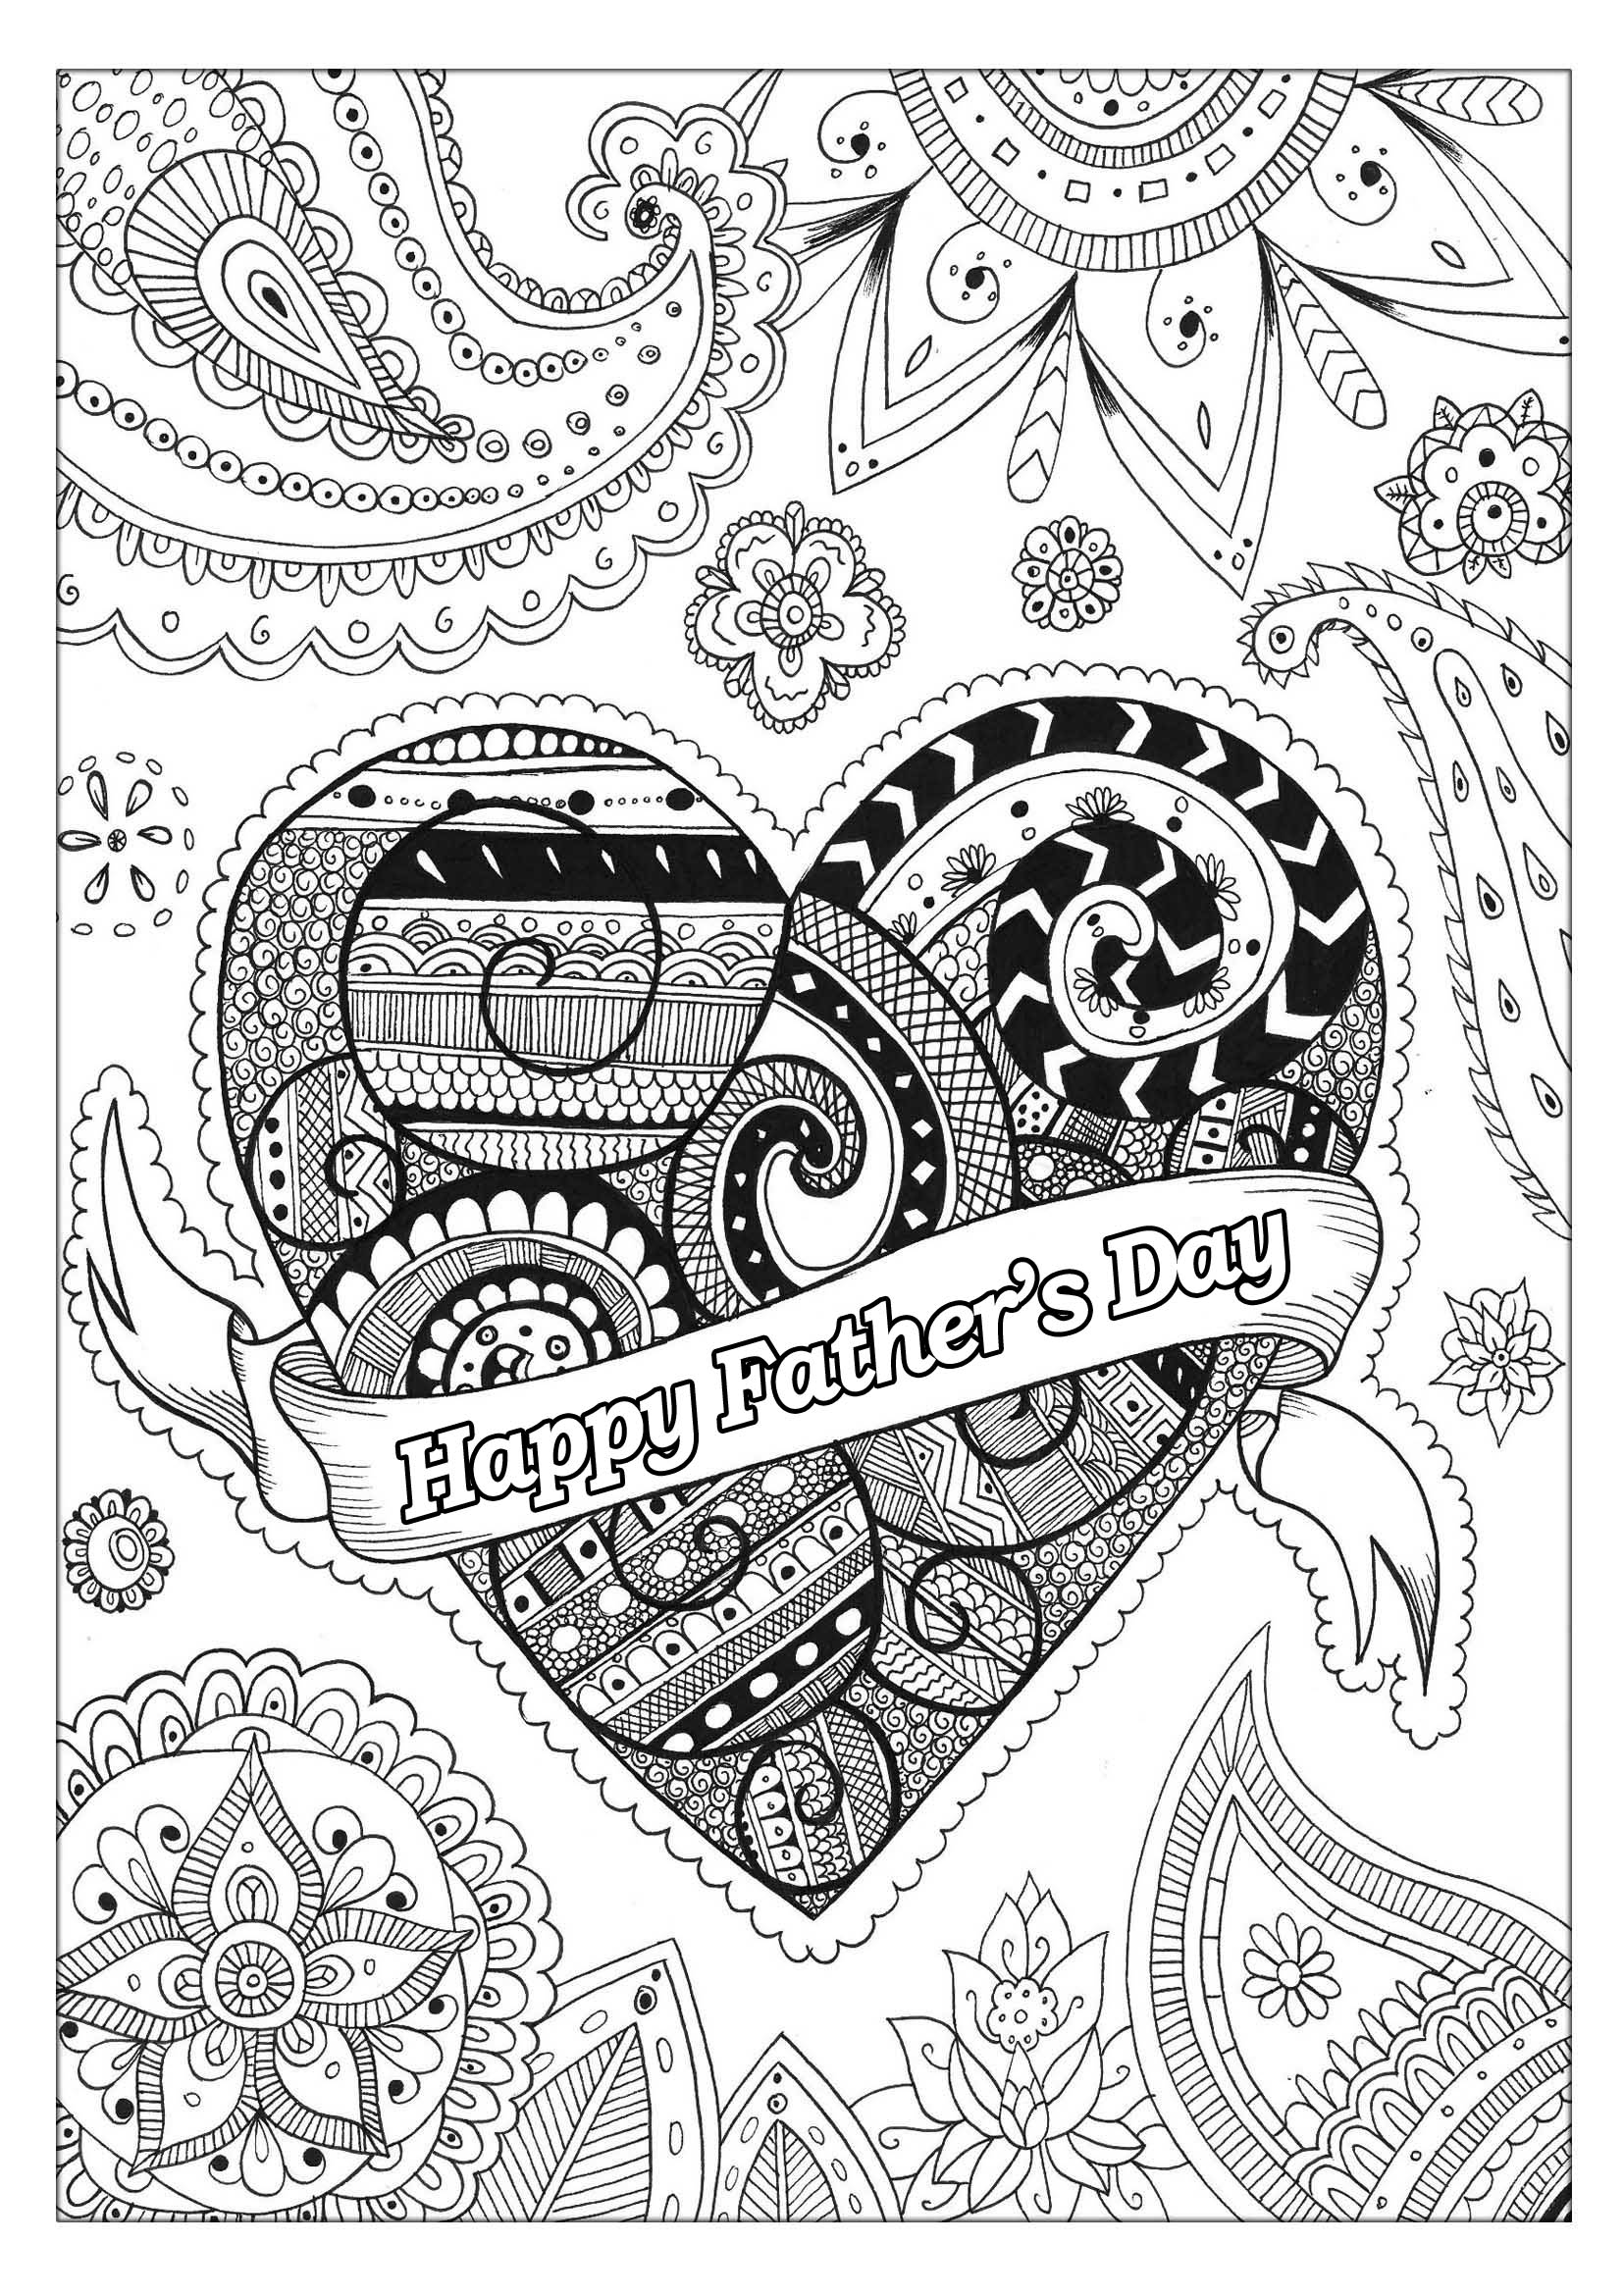 Father's day coloring page, with beautiful patterns